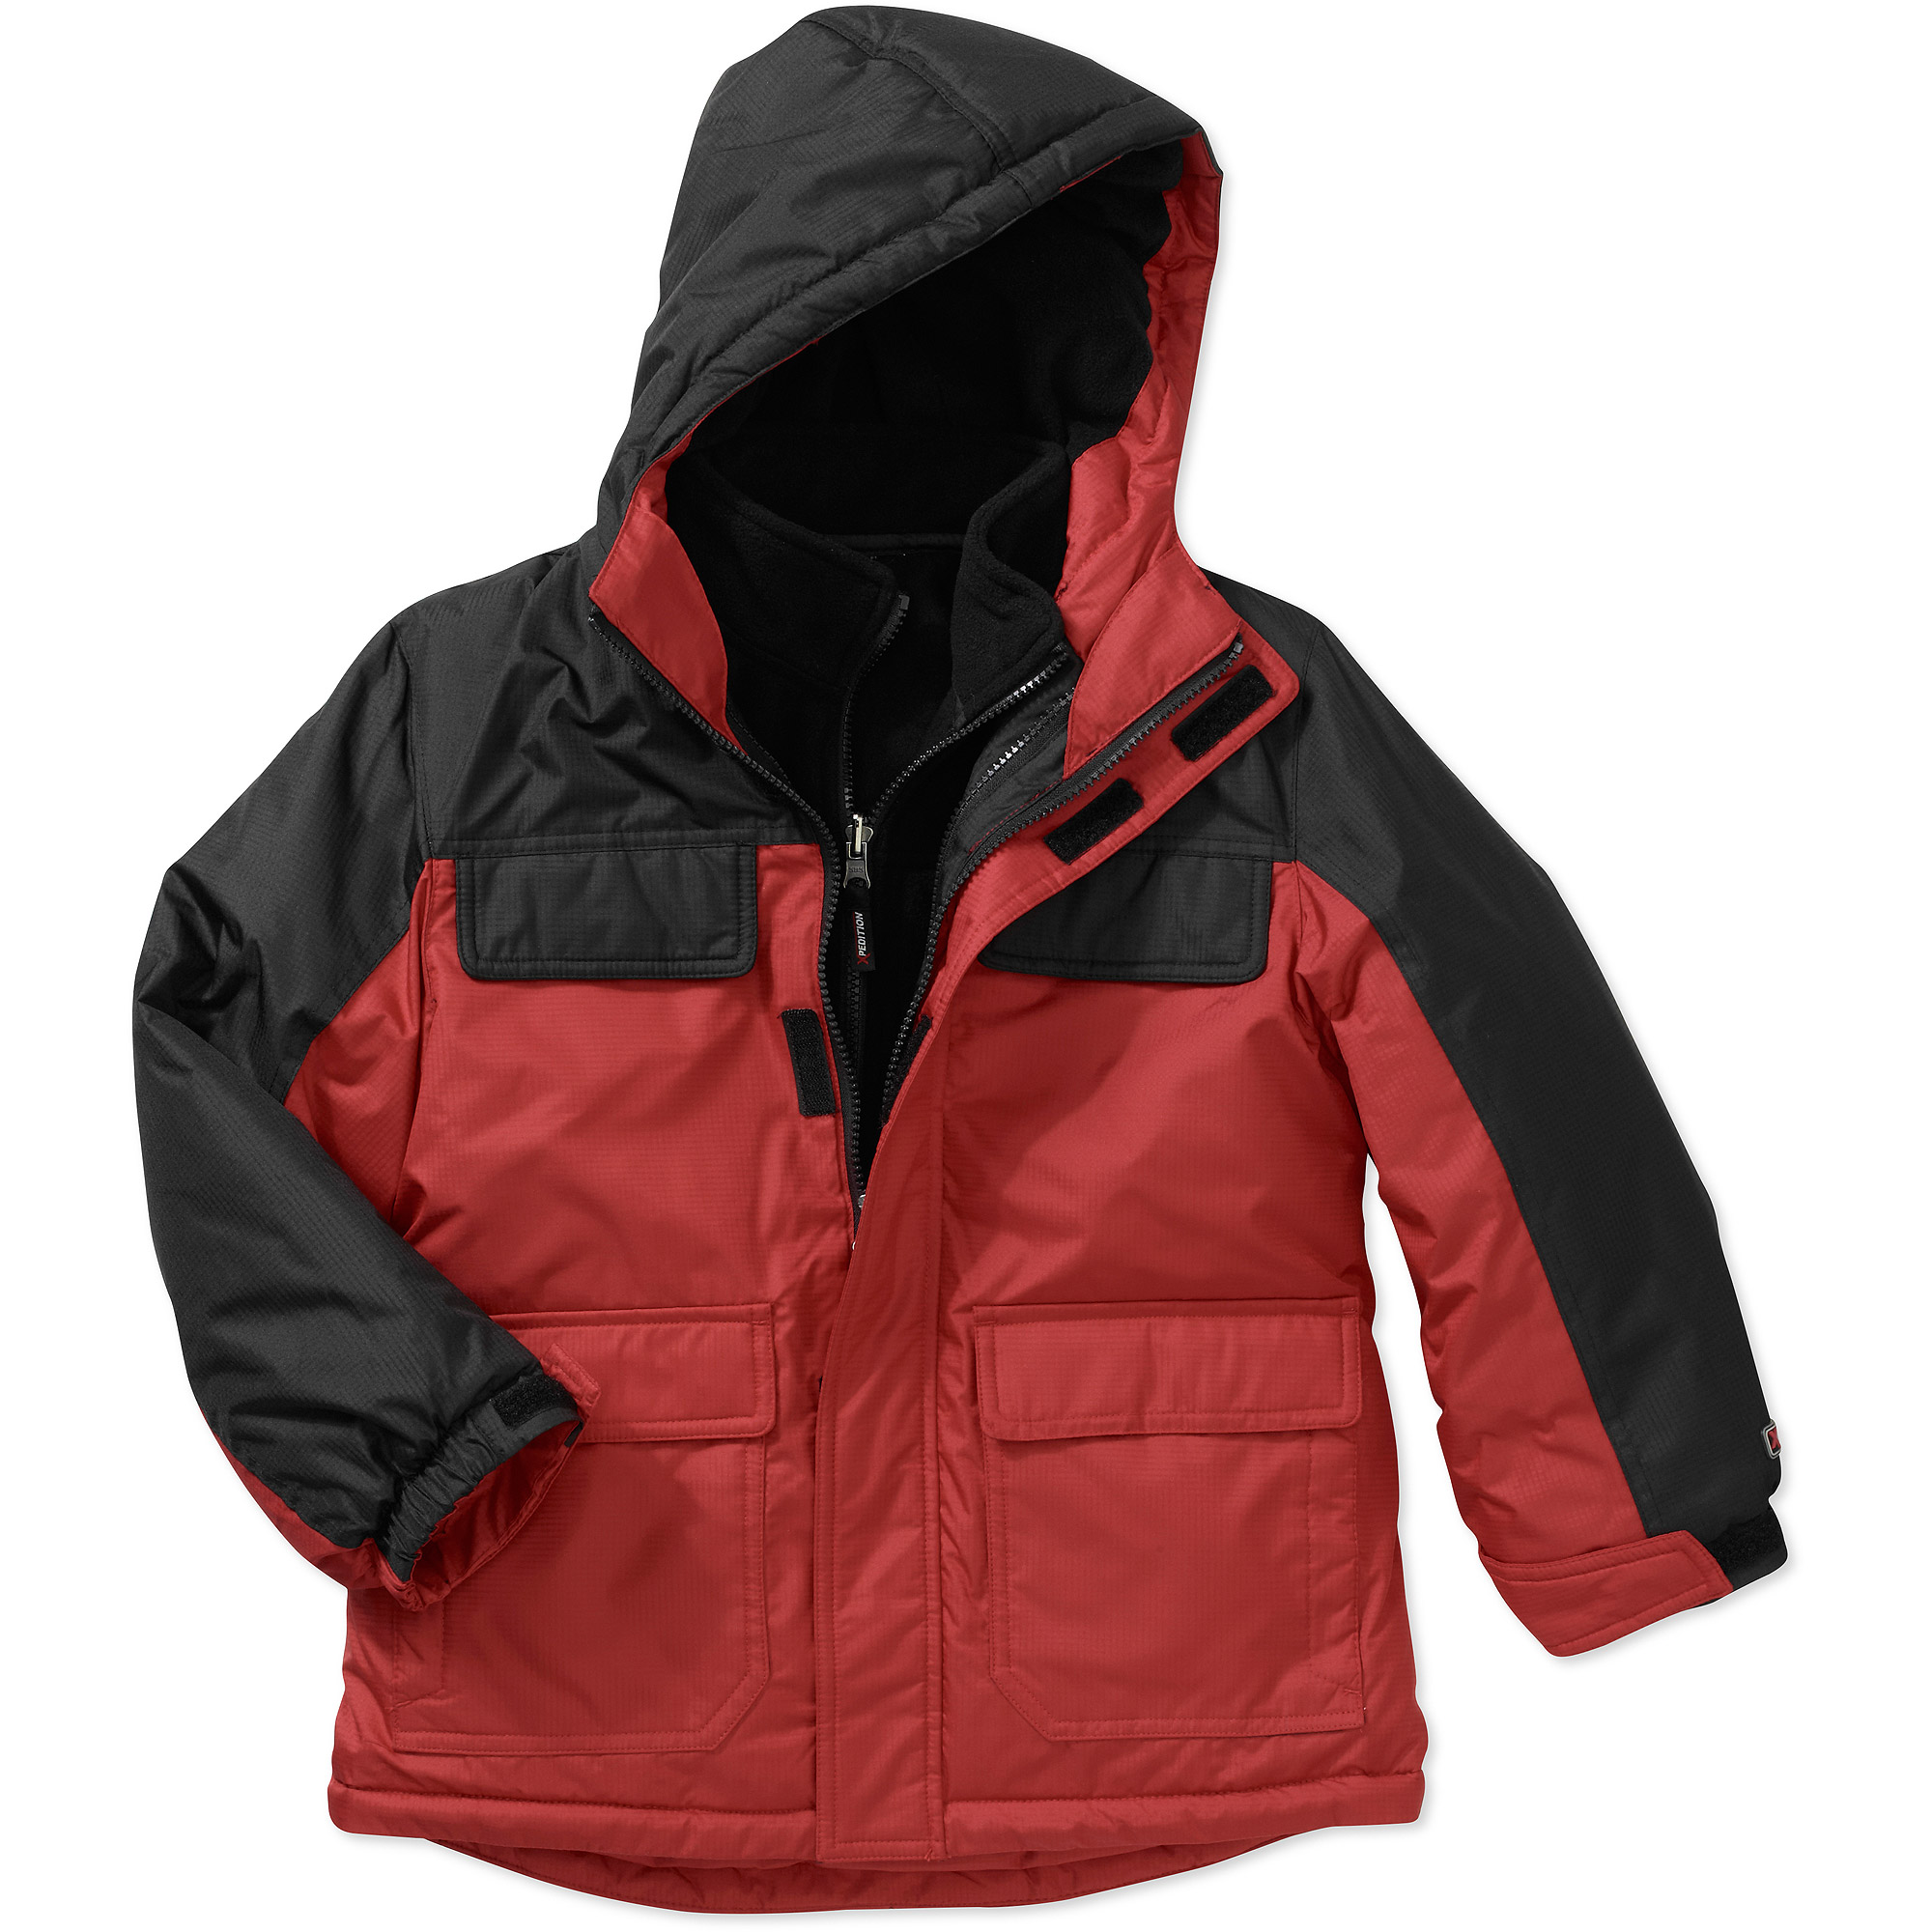 Xpedition Boys' 3 n 1 Systems Jacket